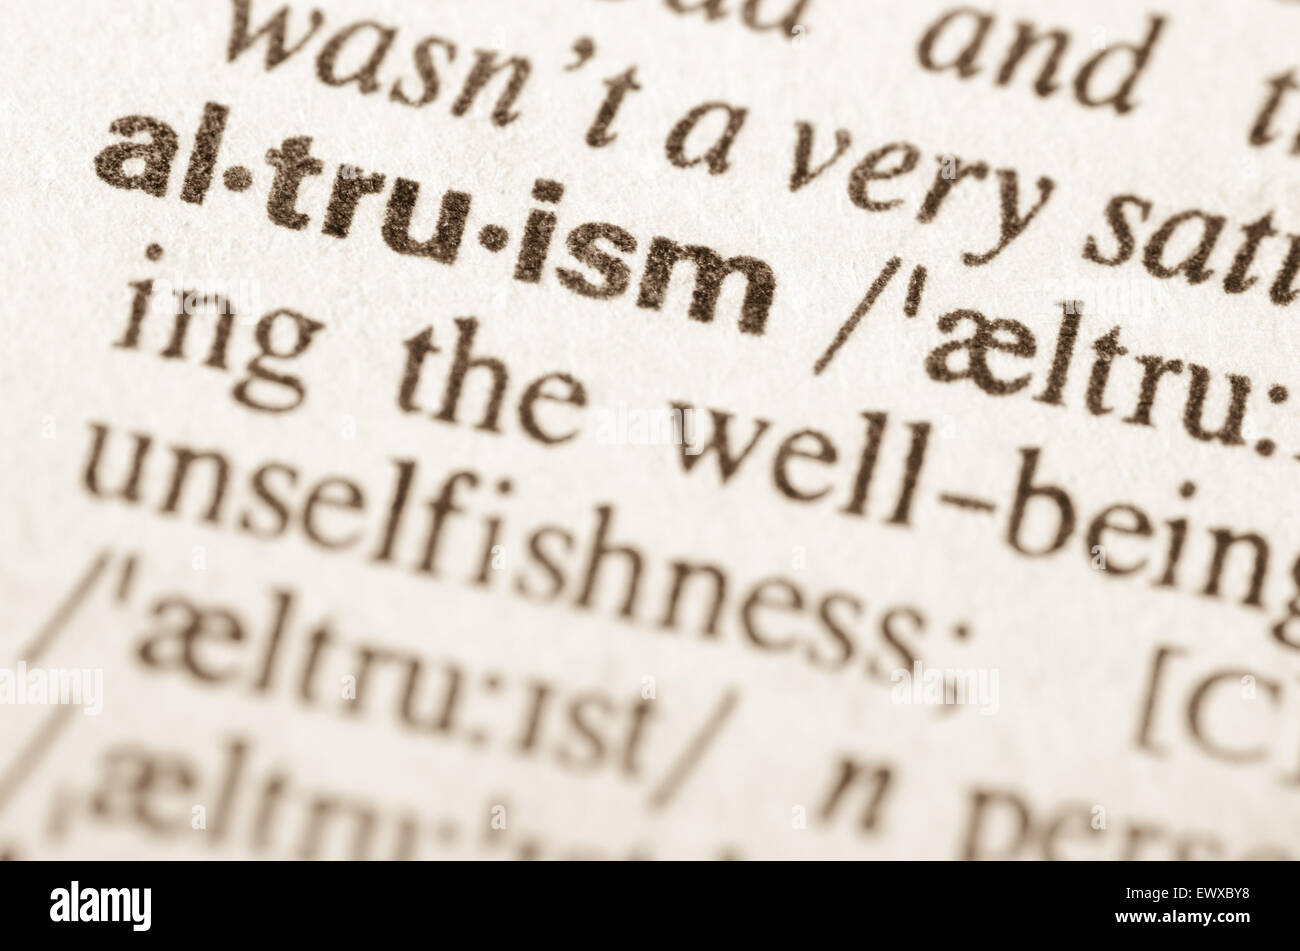 Definition of word altruism in dictionary - Stock Image